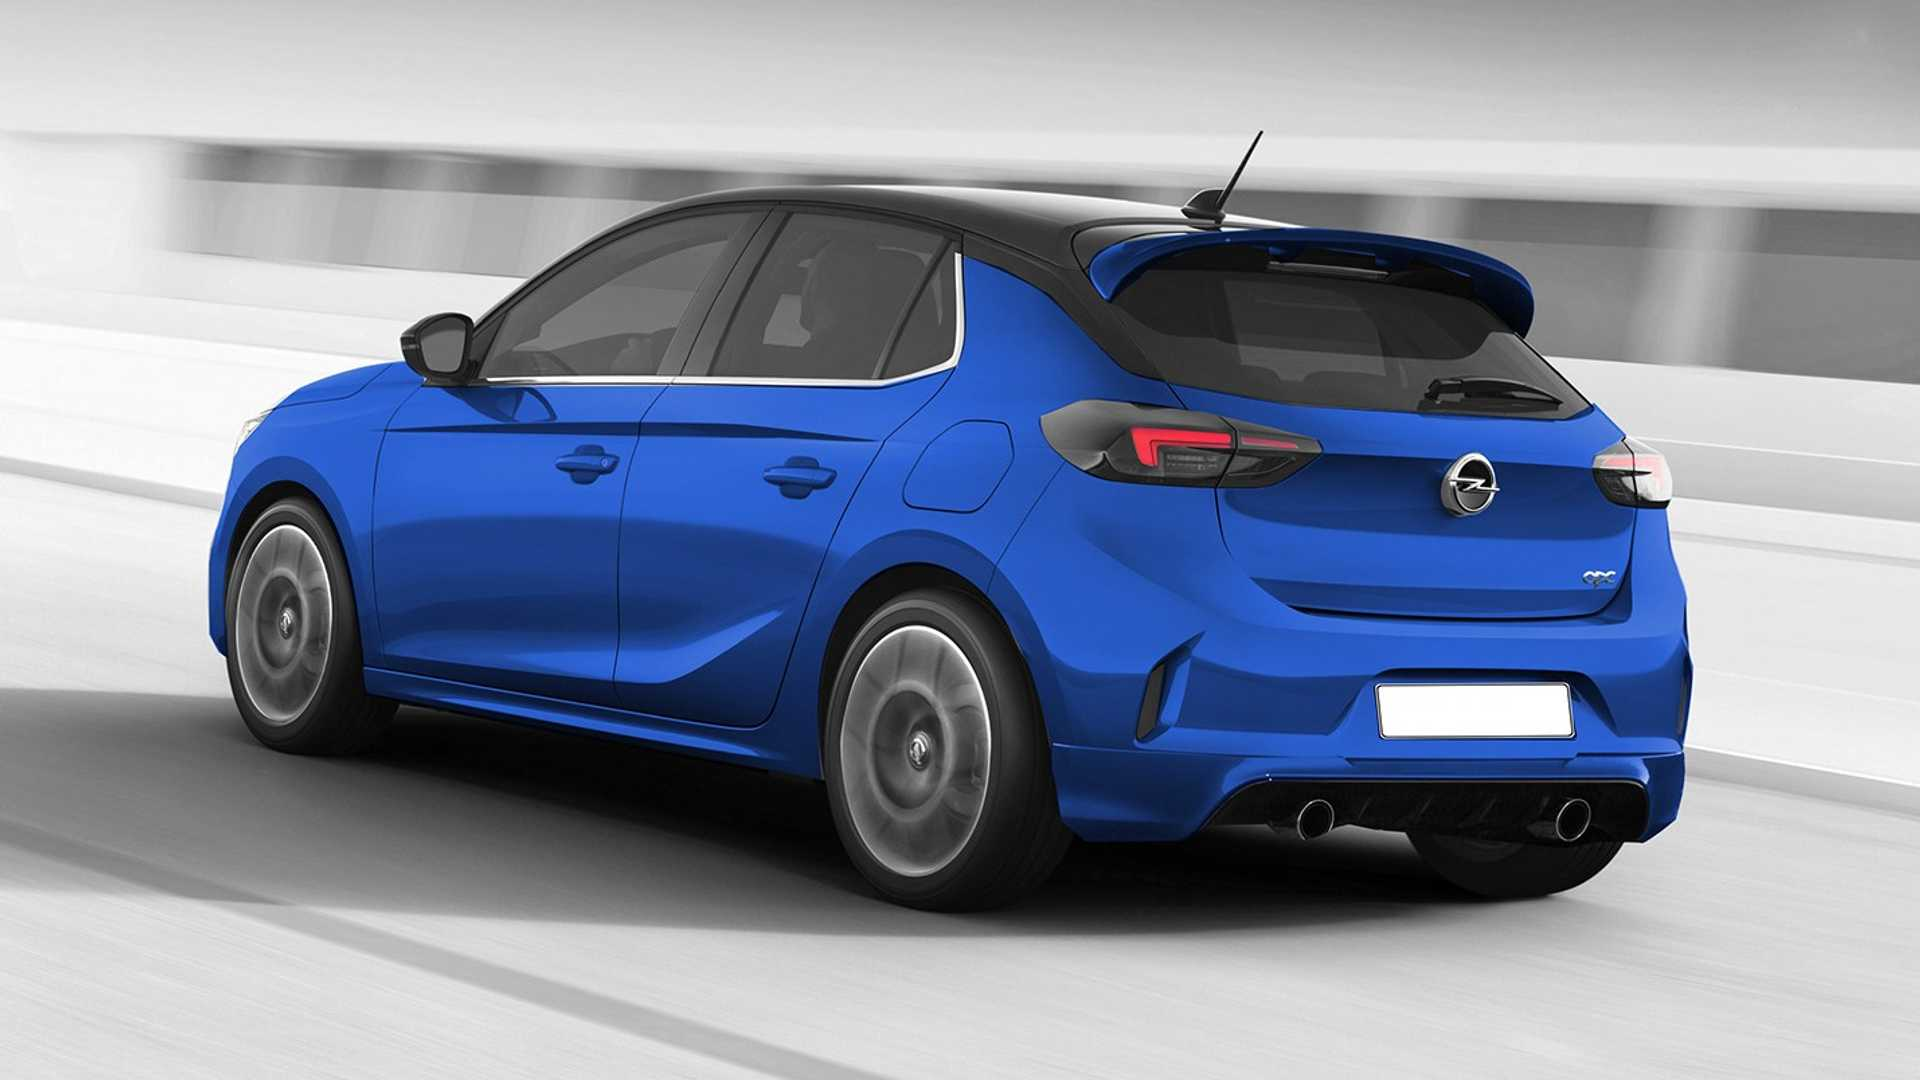 81 New Opel Corsa 2020 Rendering Research New